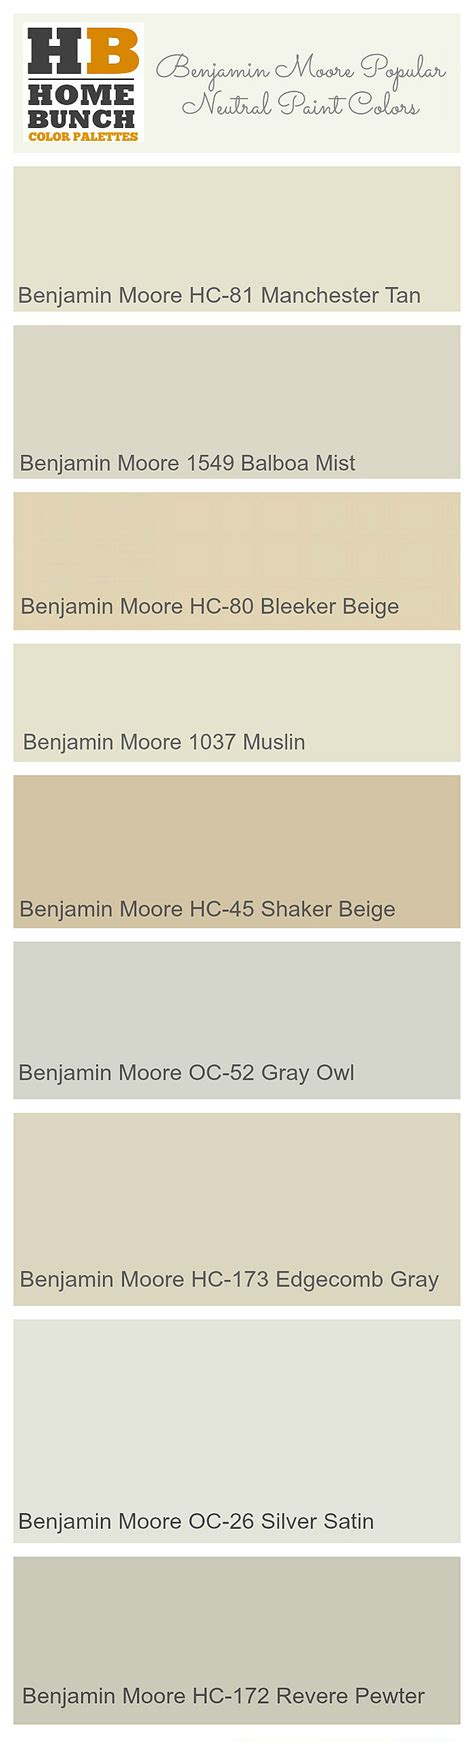 benjamin moor colors bleecker beige pinterest crafts